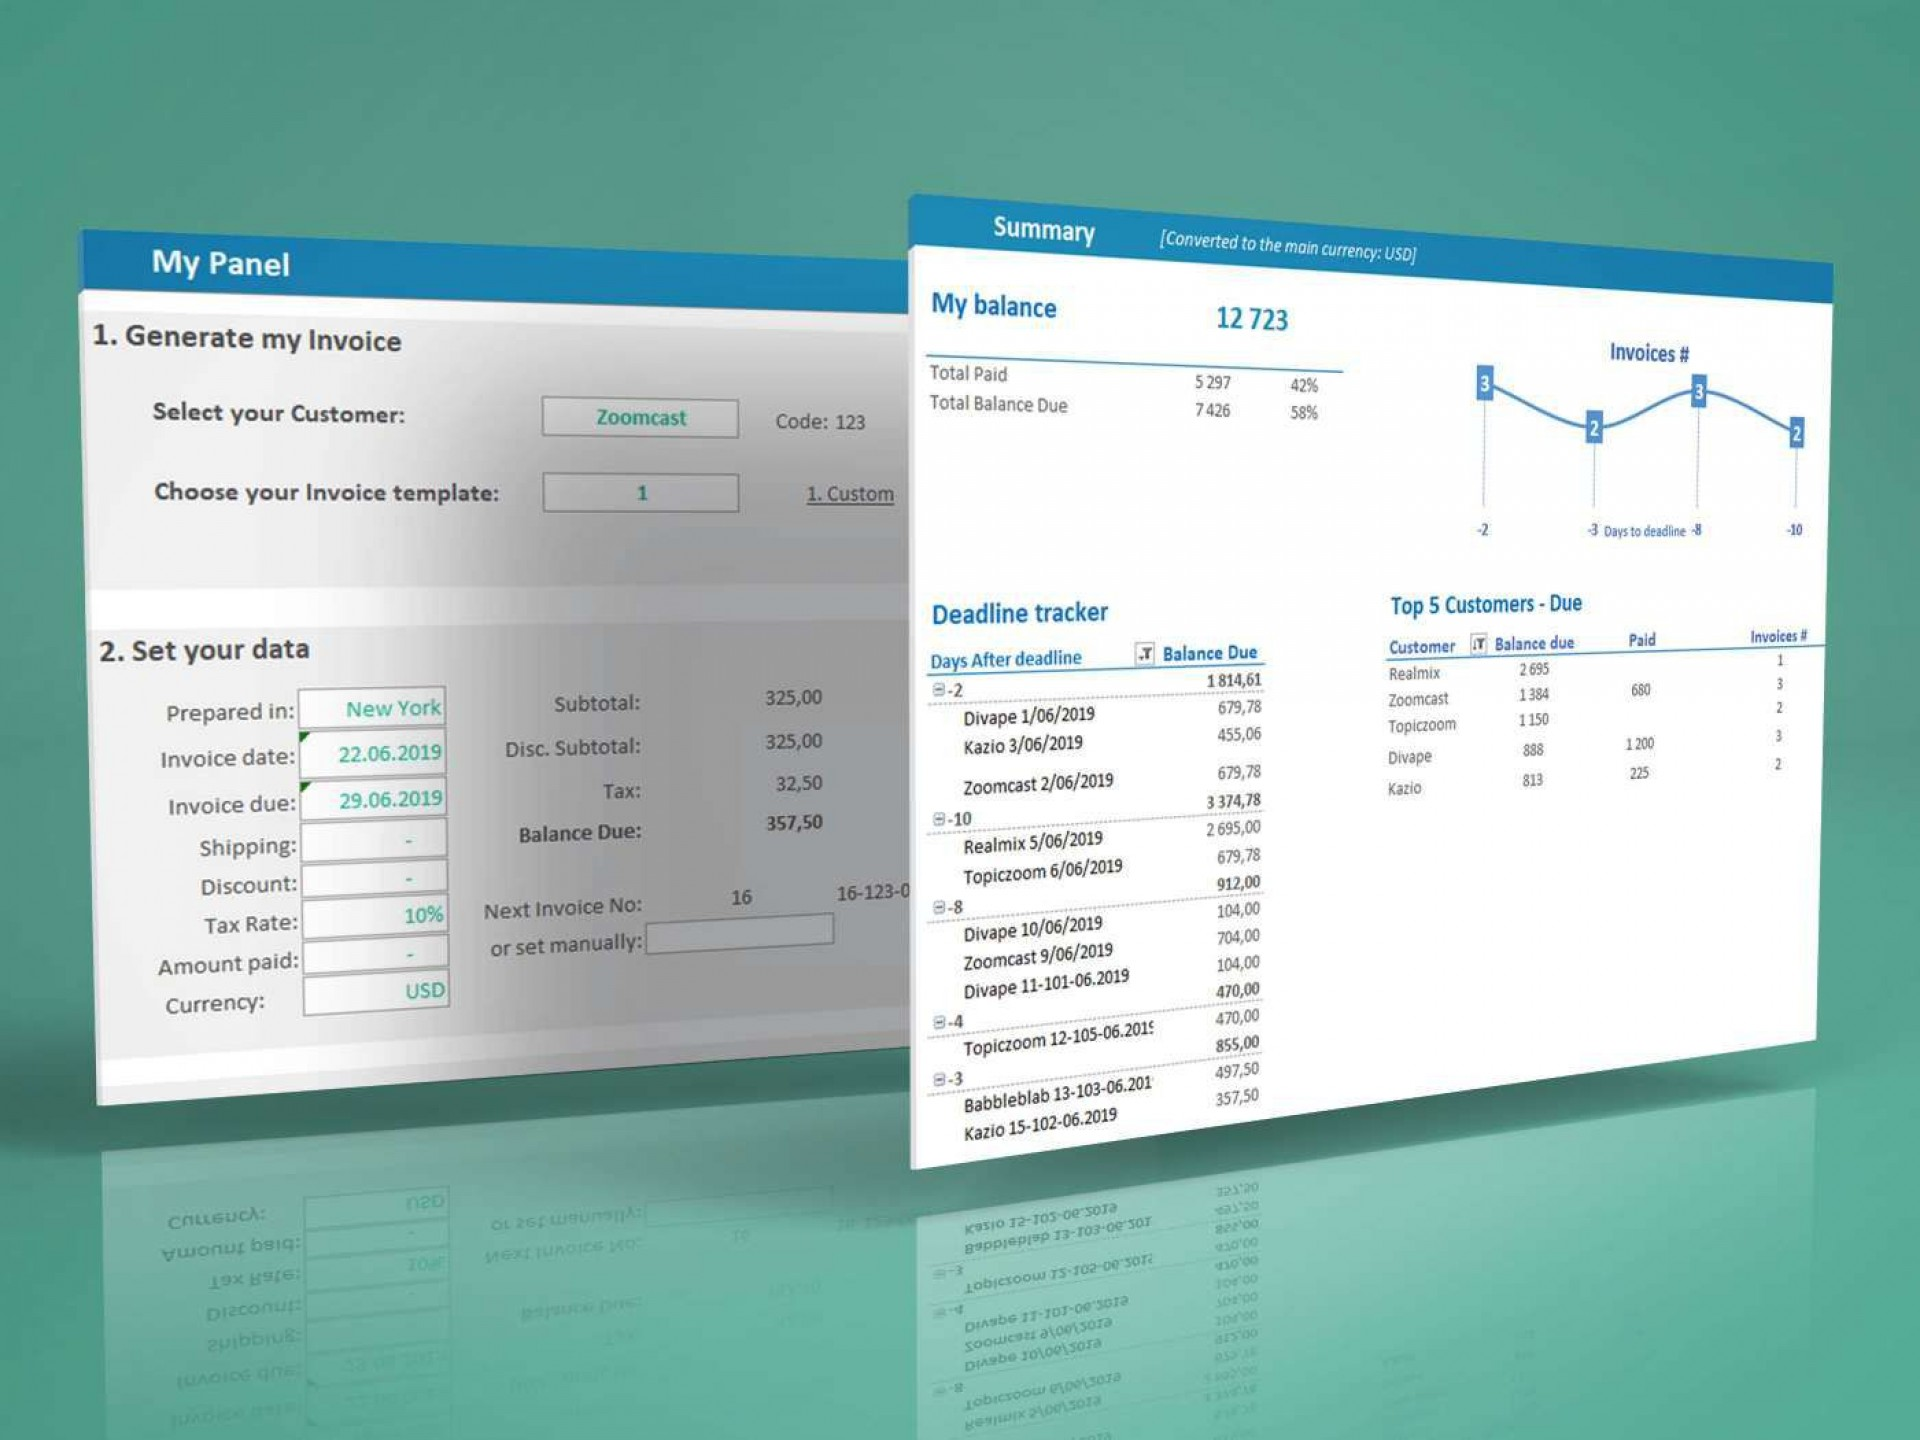 006 Unbelievable Excel Invoice Tracking Template Download Example 1920